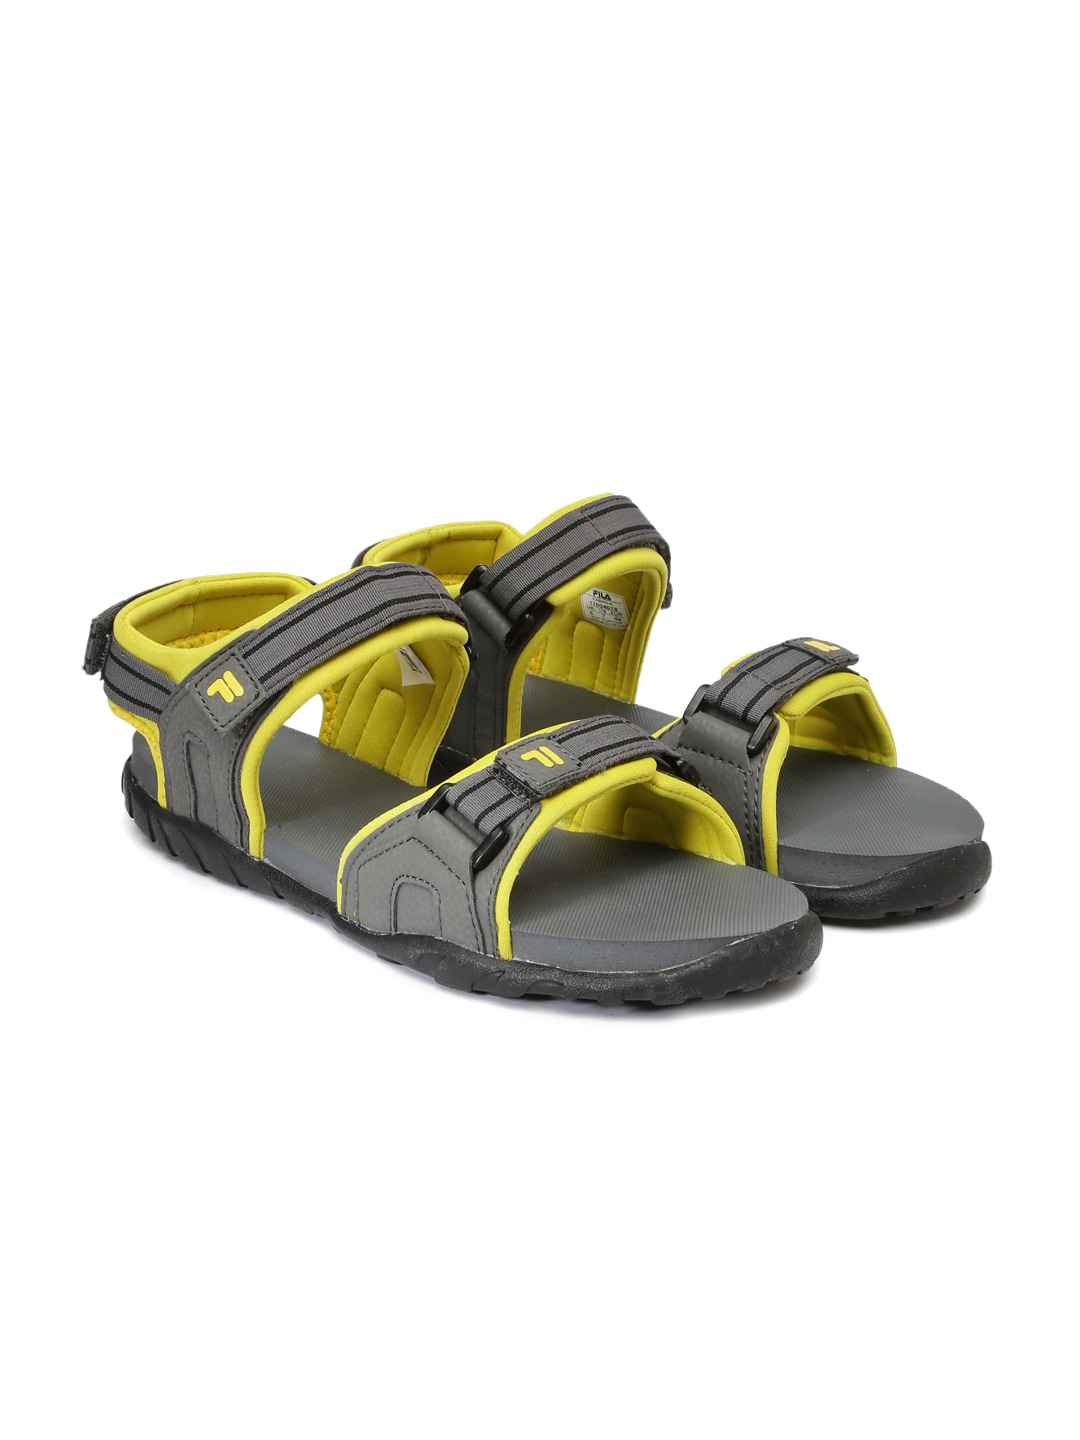 630d1b792fb4 Fila 11004078 Men Grey And Yellow Sports Sandals - Best Price in ...